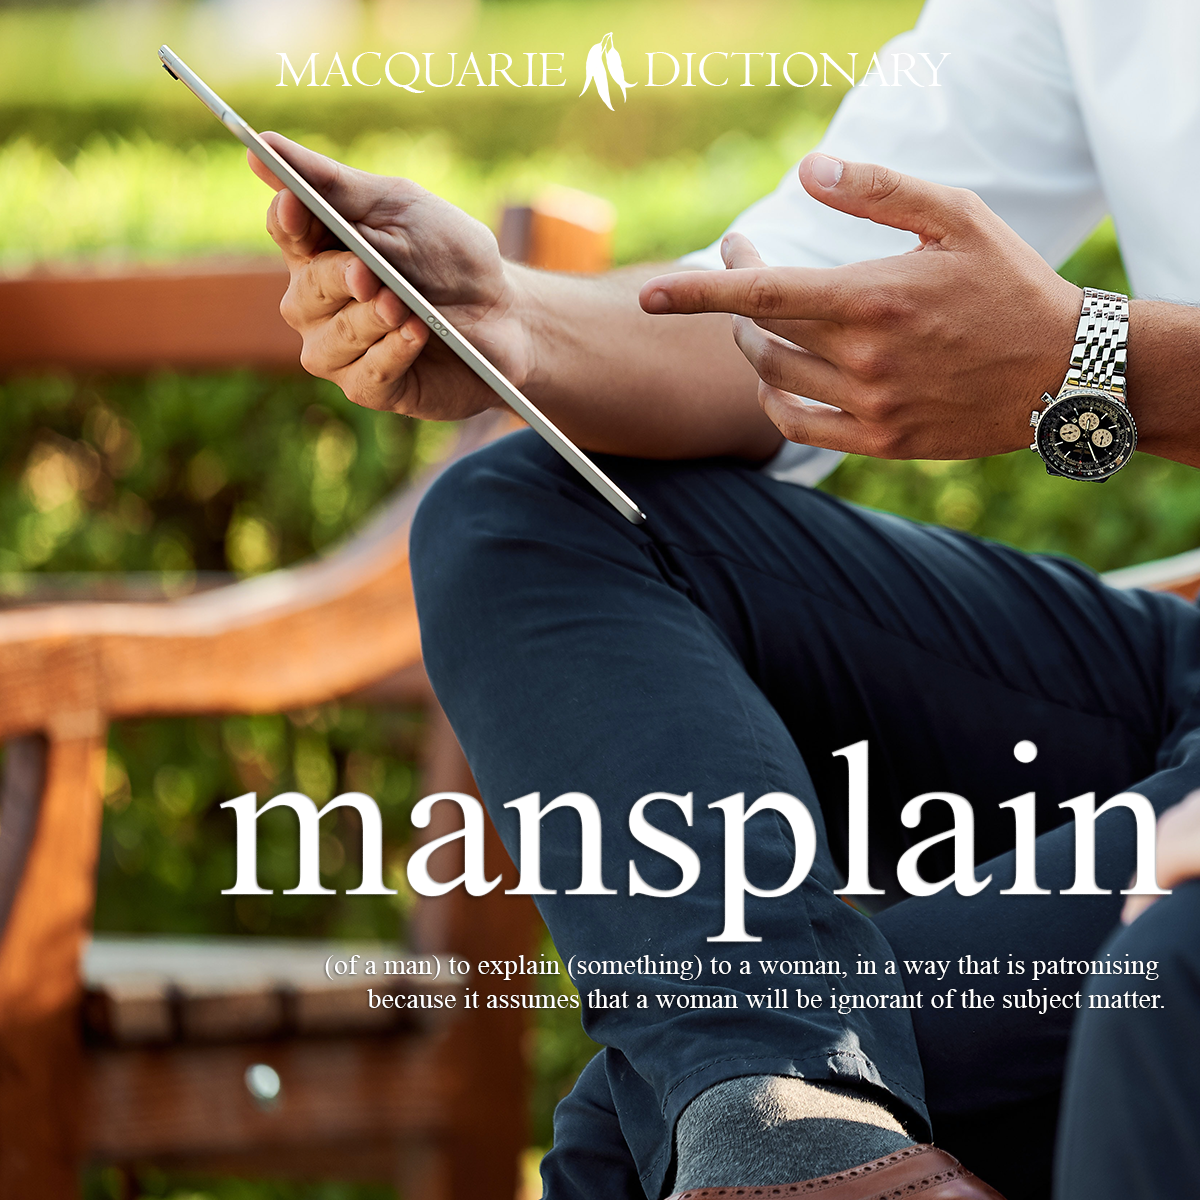 mainsplain - (of a man) to explain (something) to a woman, in a way that is patronising because it assumes that a woman will be ignorant of the subject matter.